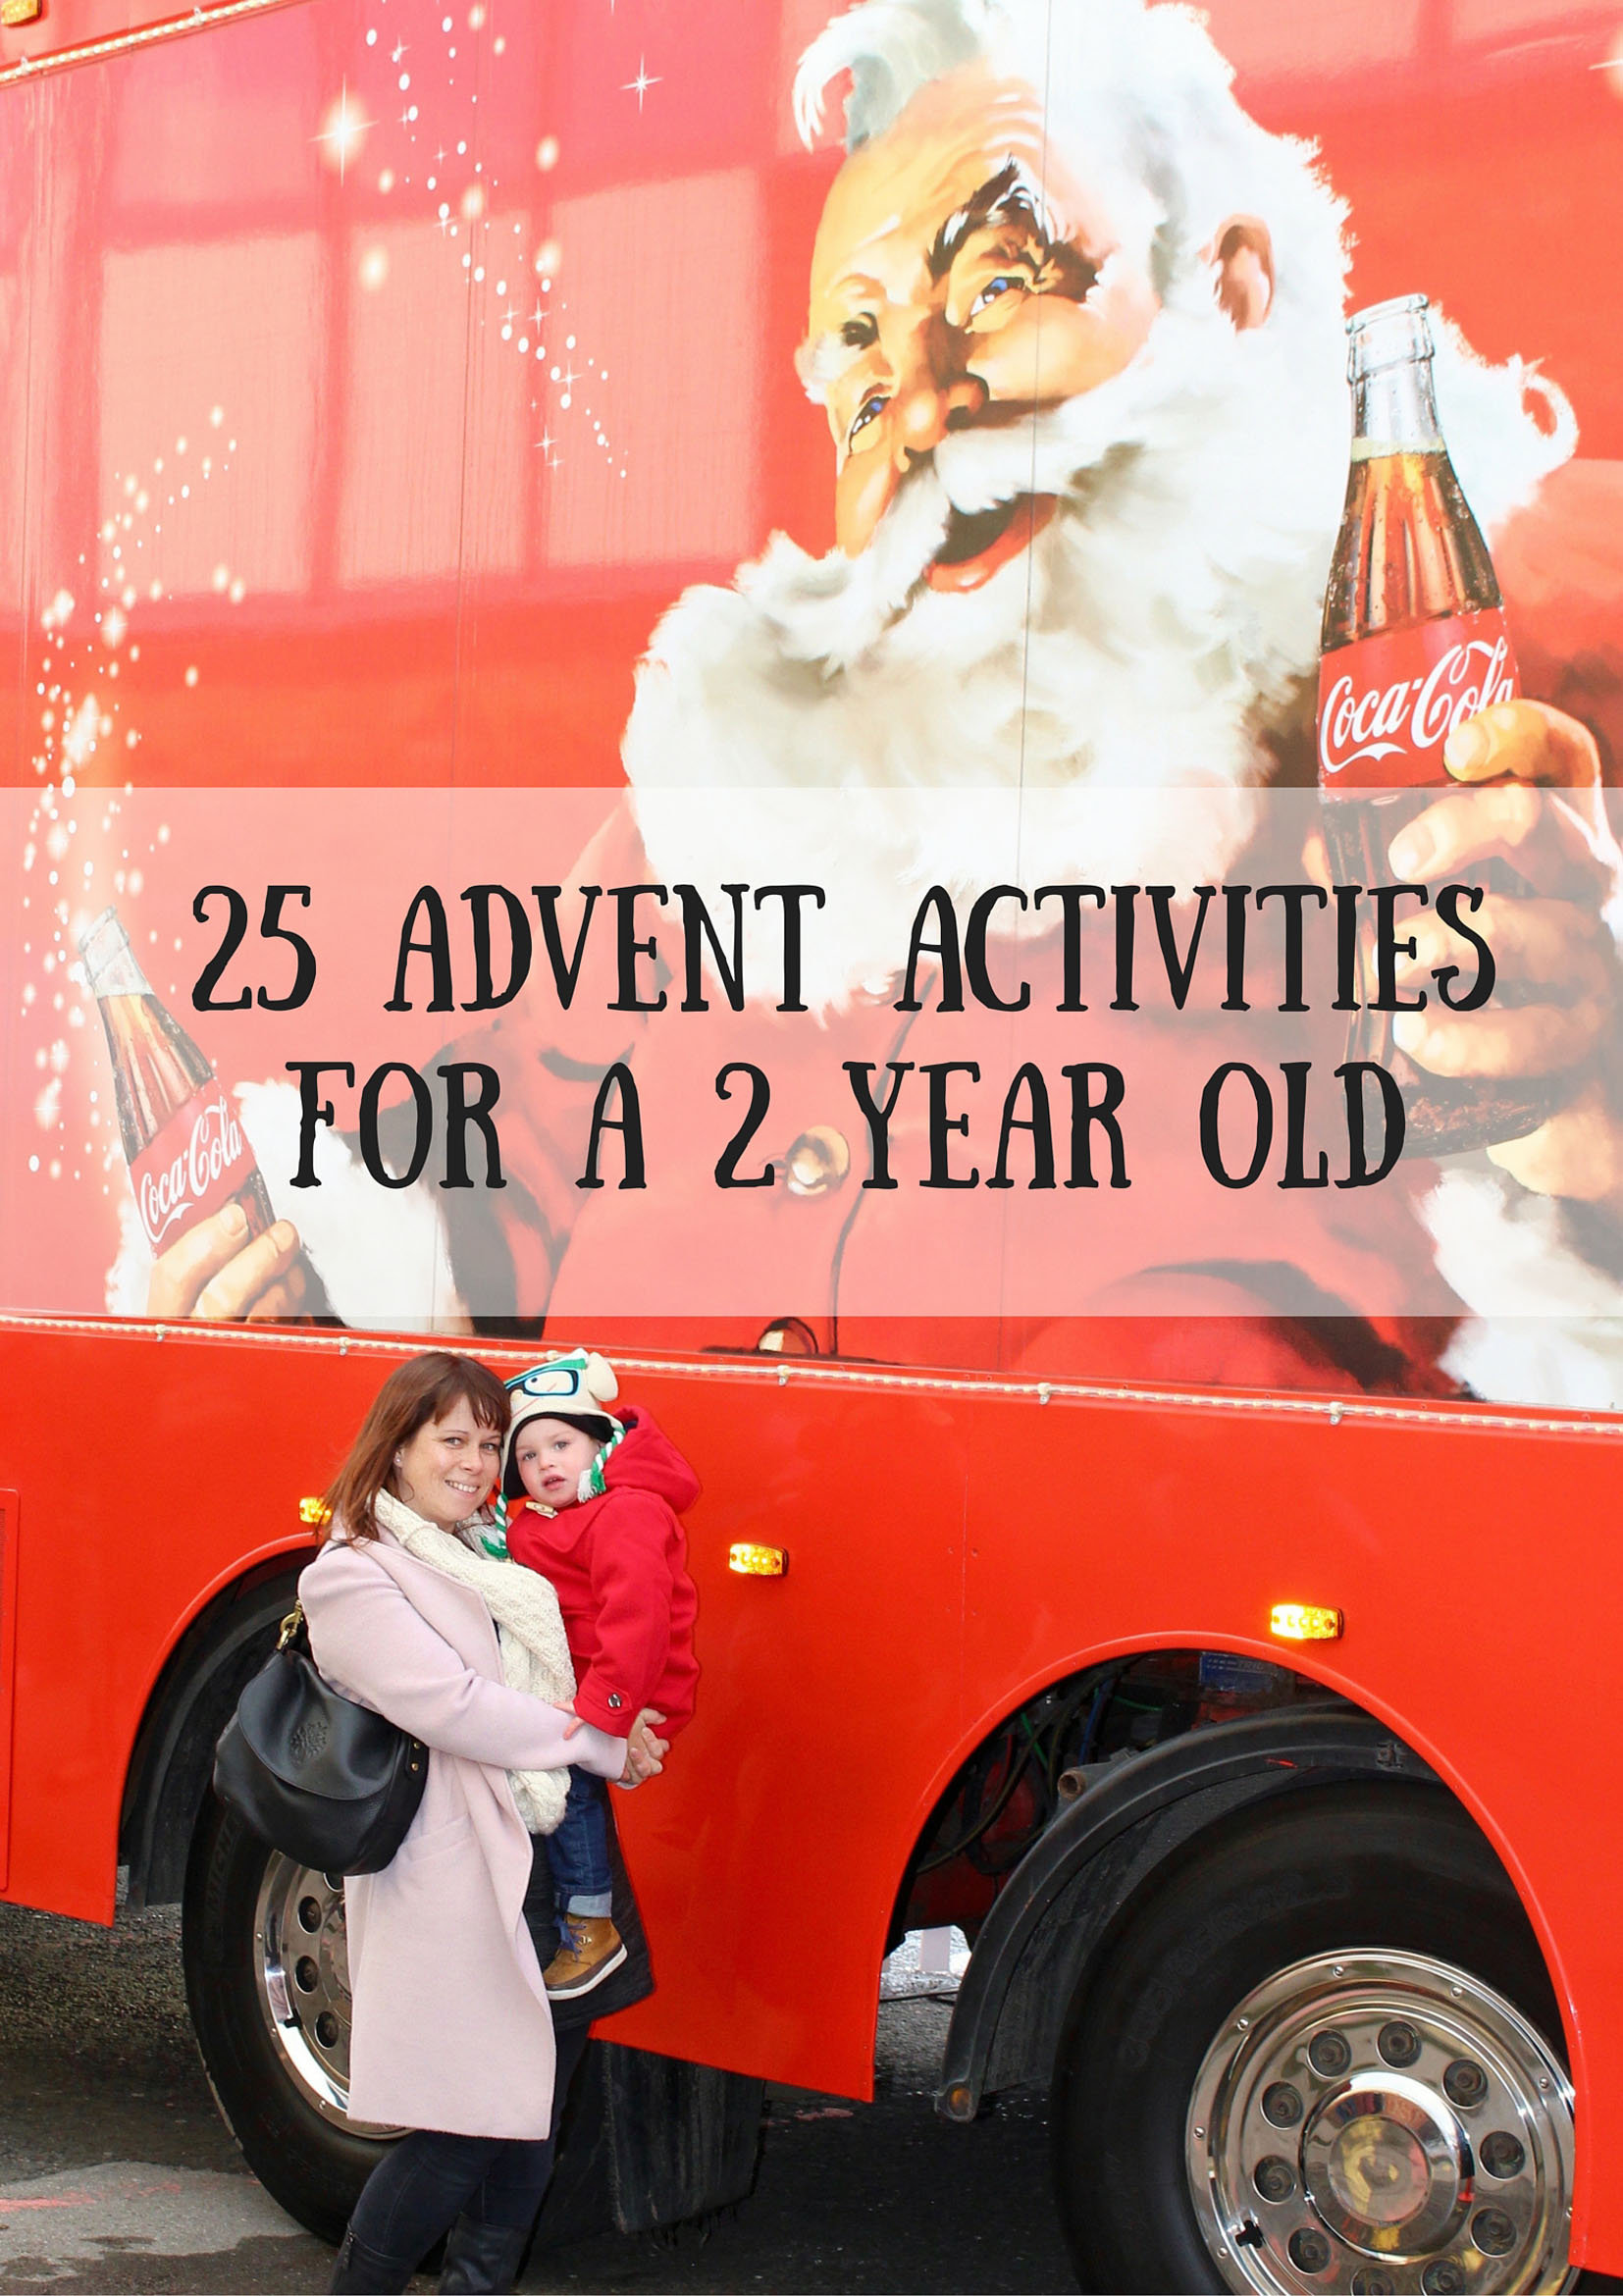 25 ADVENT ActivitiesFor a 2 year Old